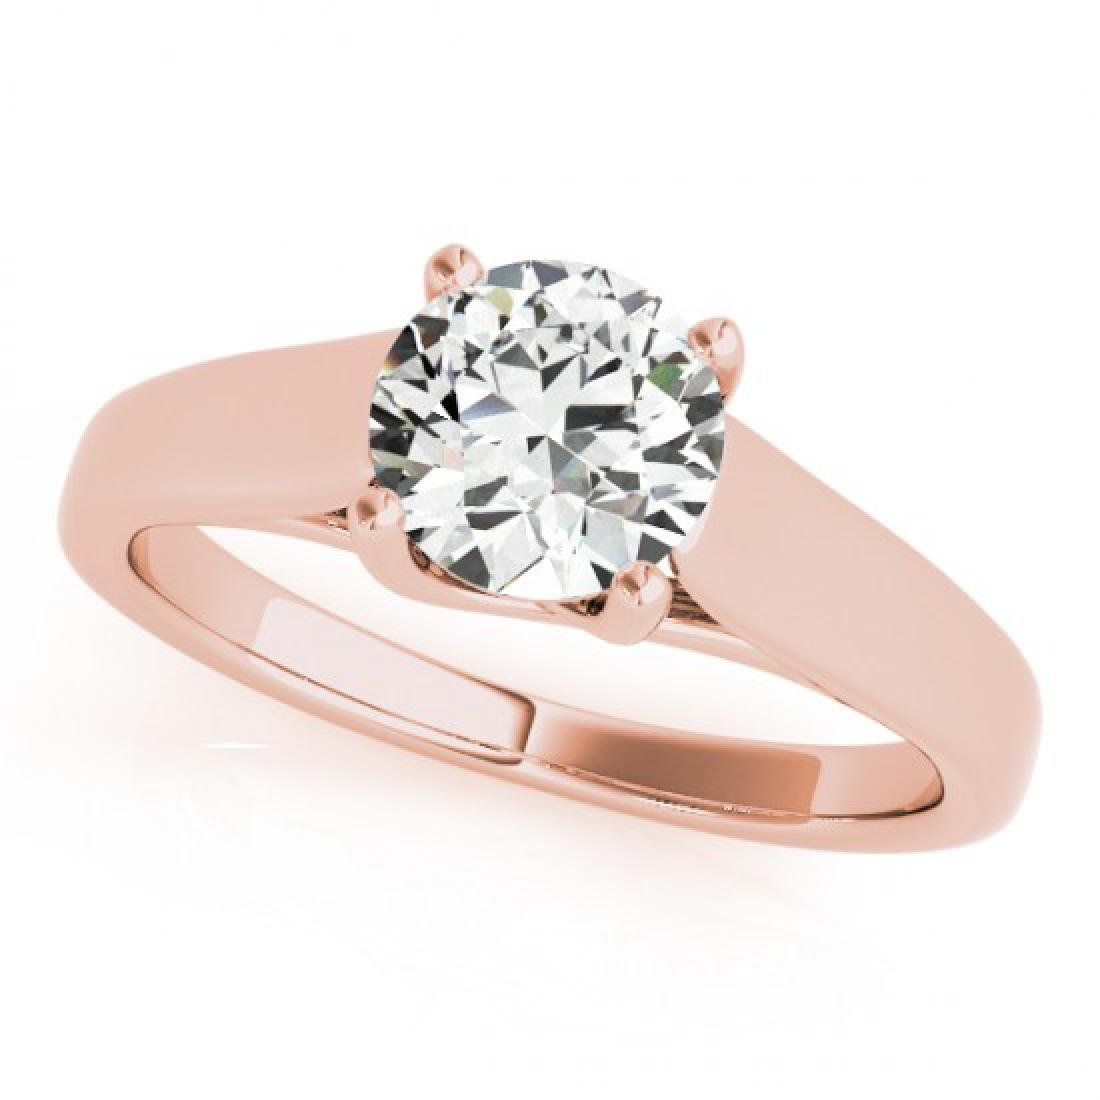 1 CTW Certified VS/SI Diamond Solitaire Ring 14K Rose - 2